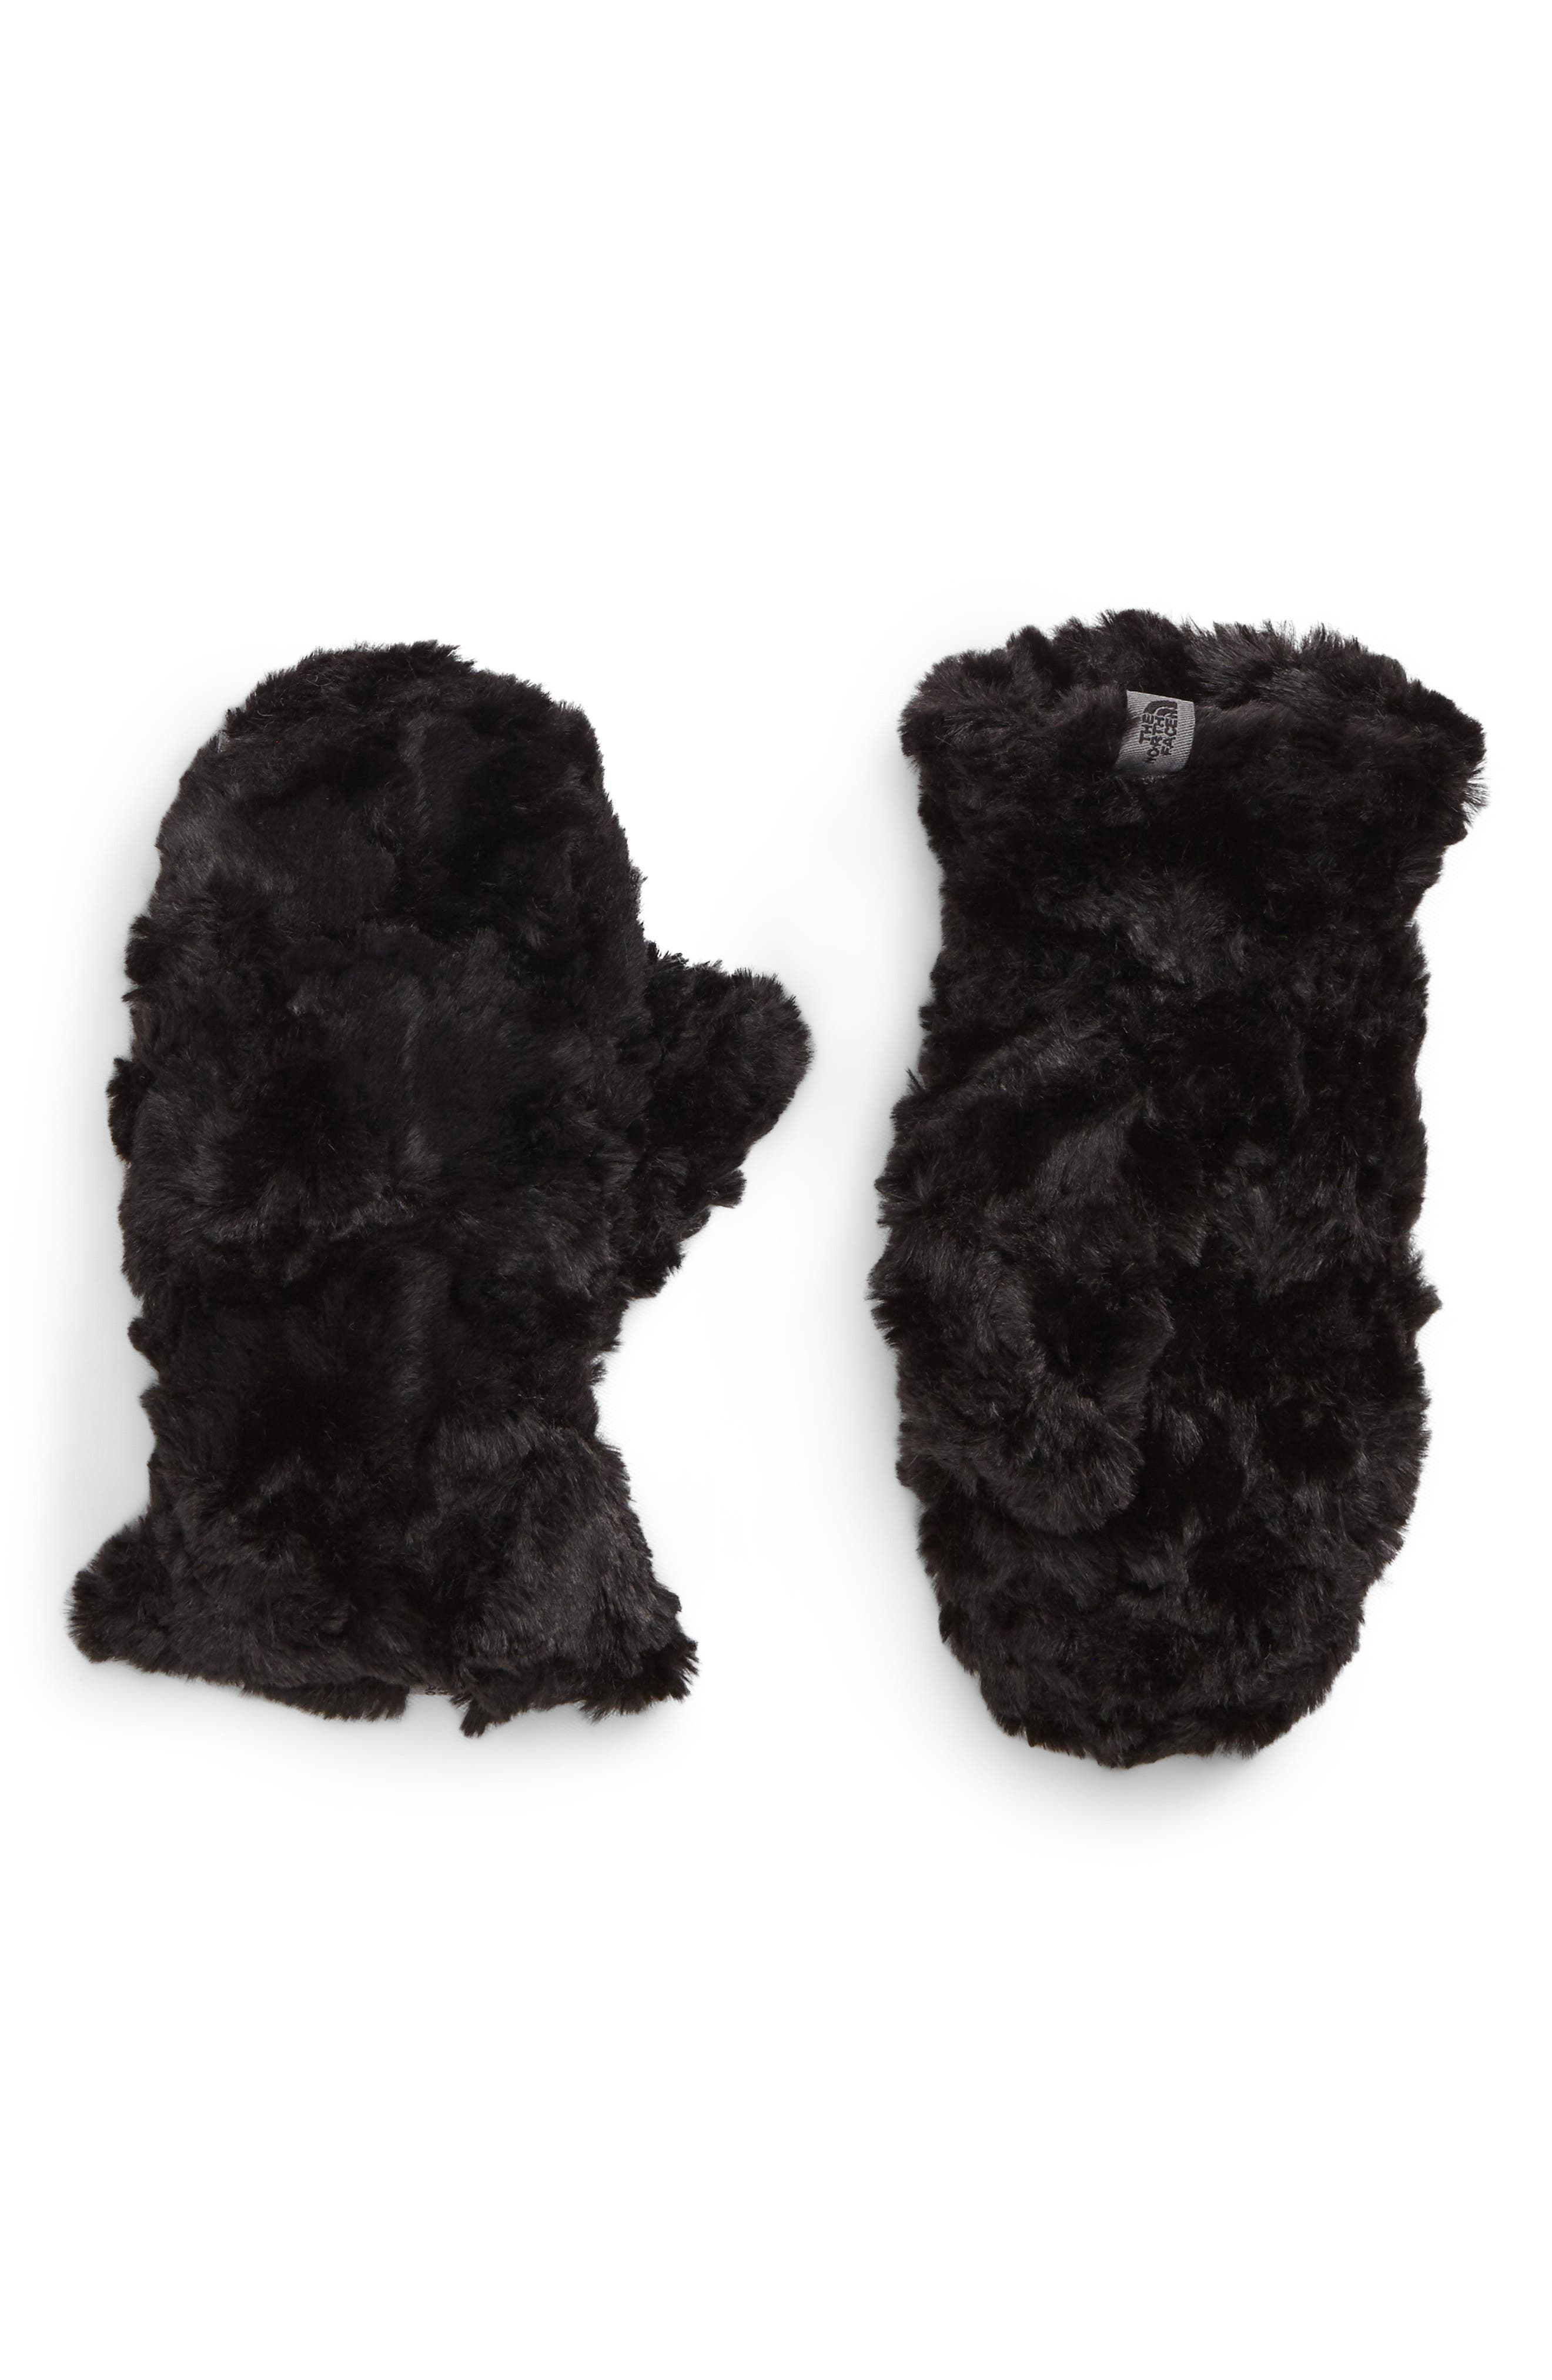 Mossbud Swirl Reversible Water Resistant Mittens,                             Alternate thumbnail 2, color,                             Tnf Black